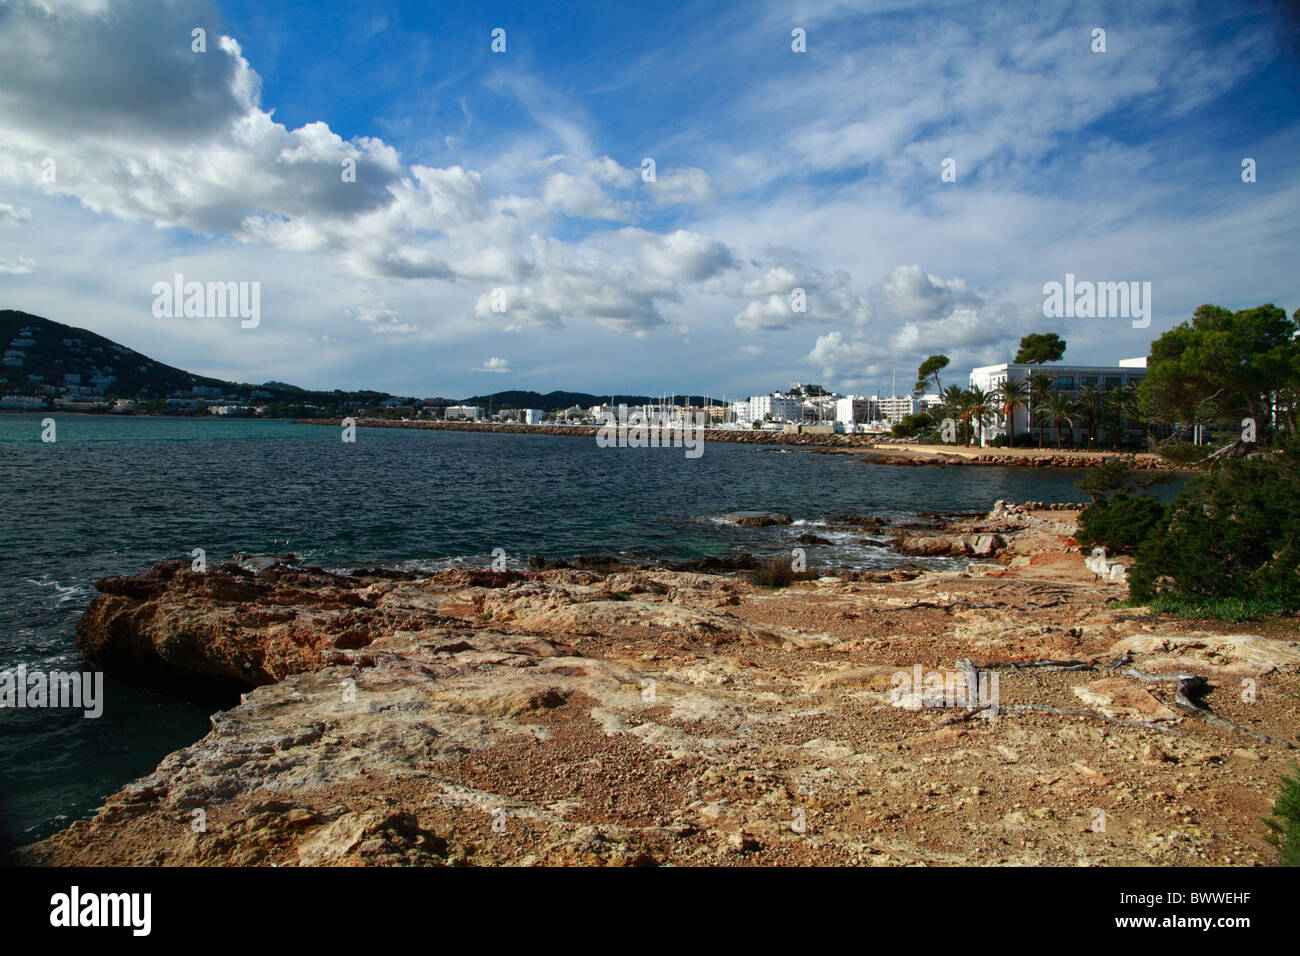 Santa Eulalia shoreline, Ibiza, Spain Stock Photo